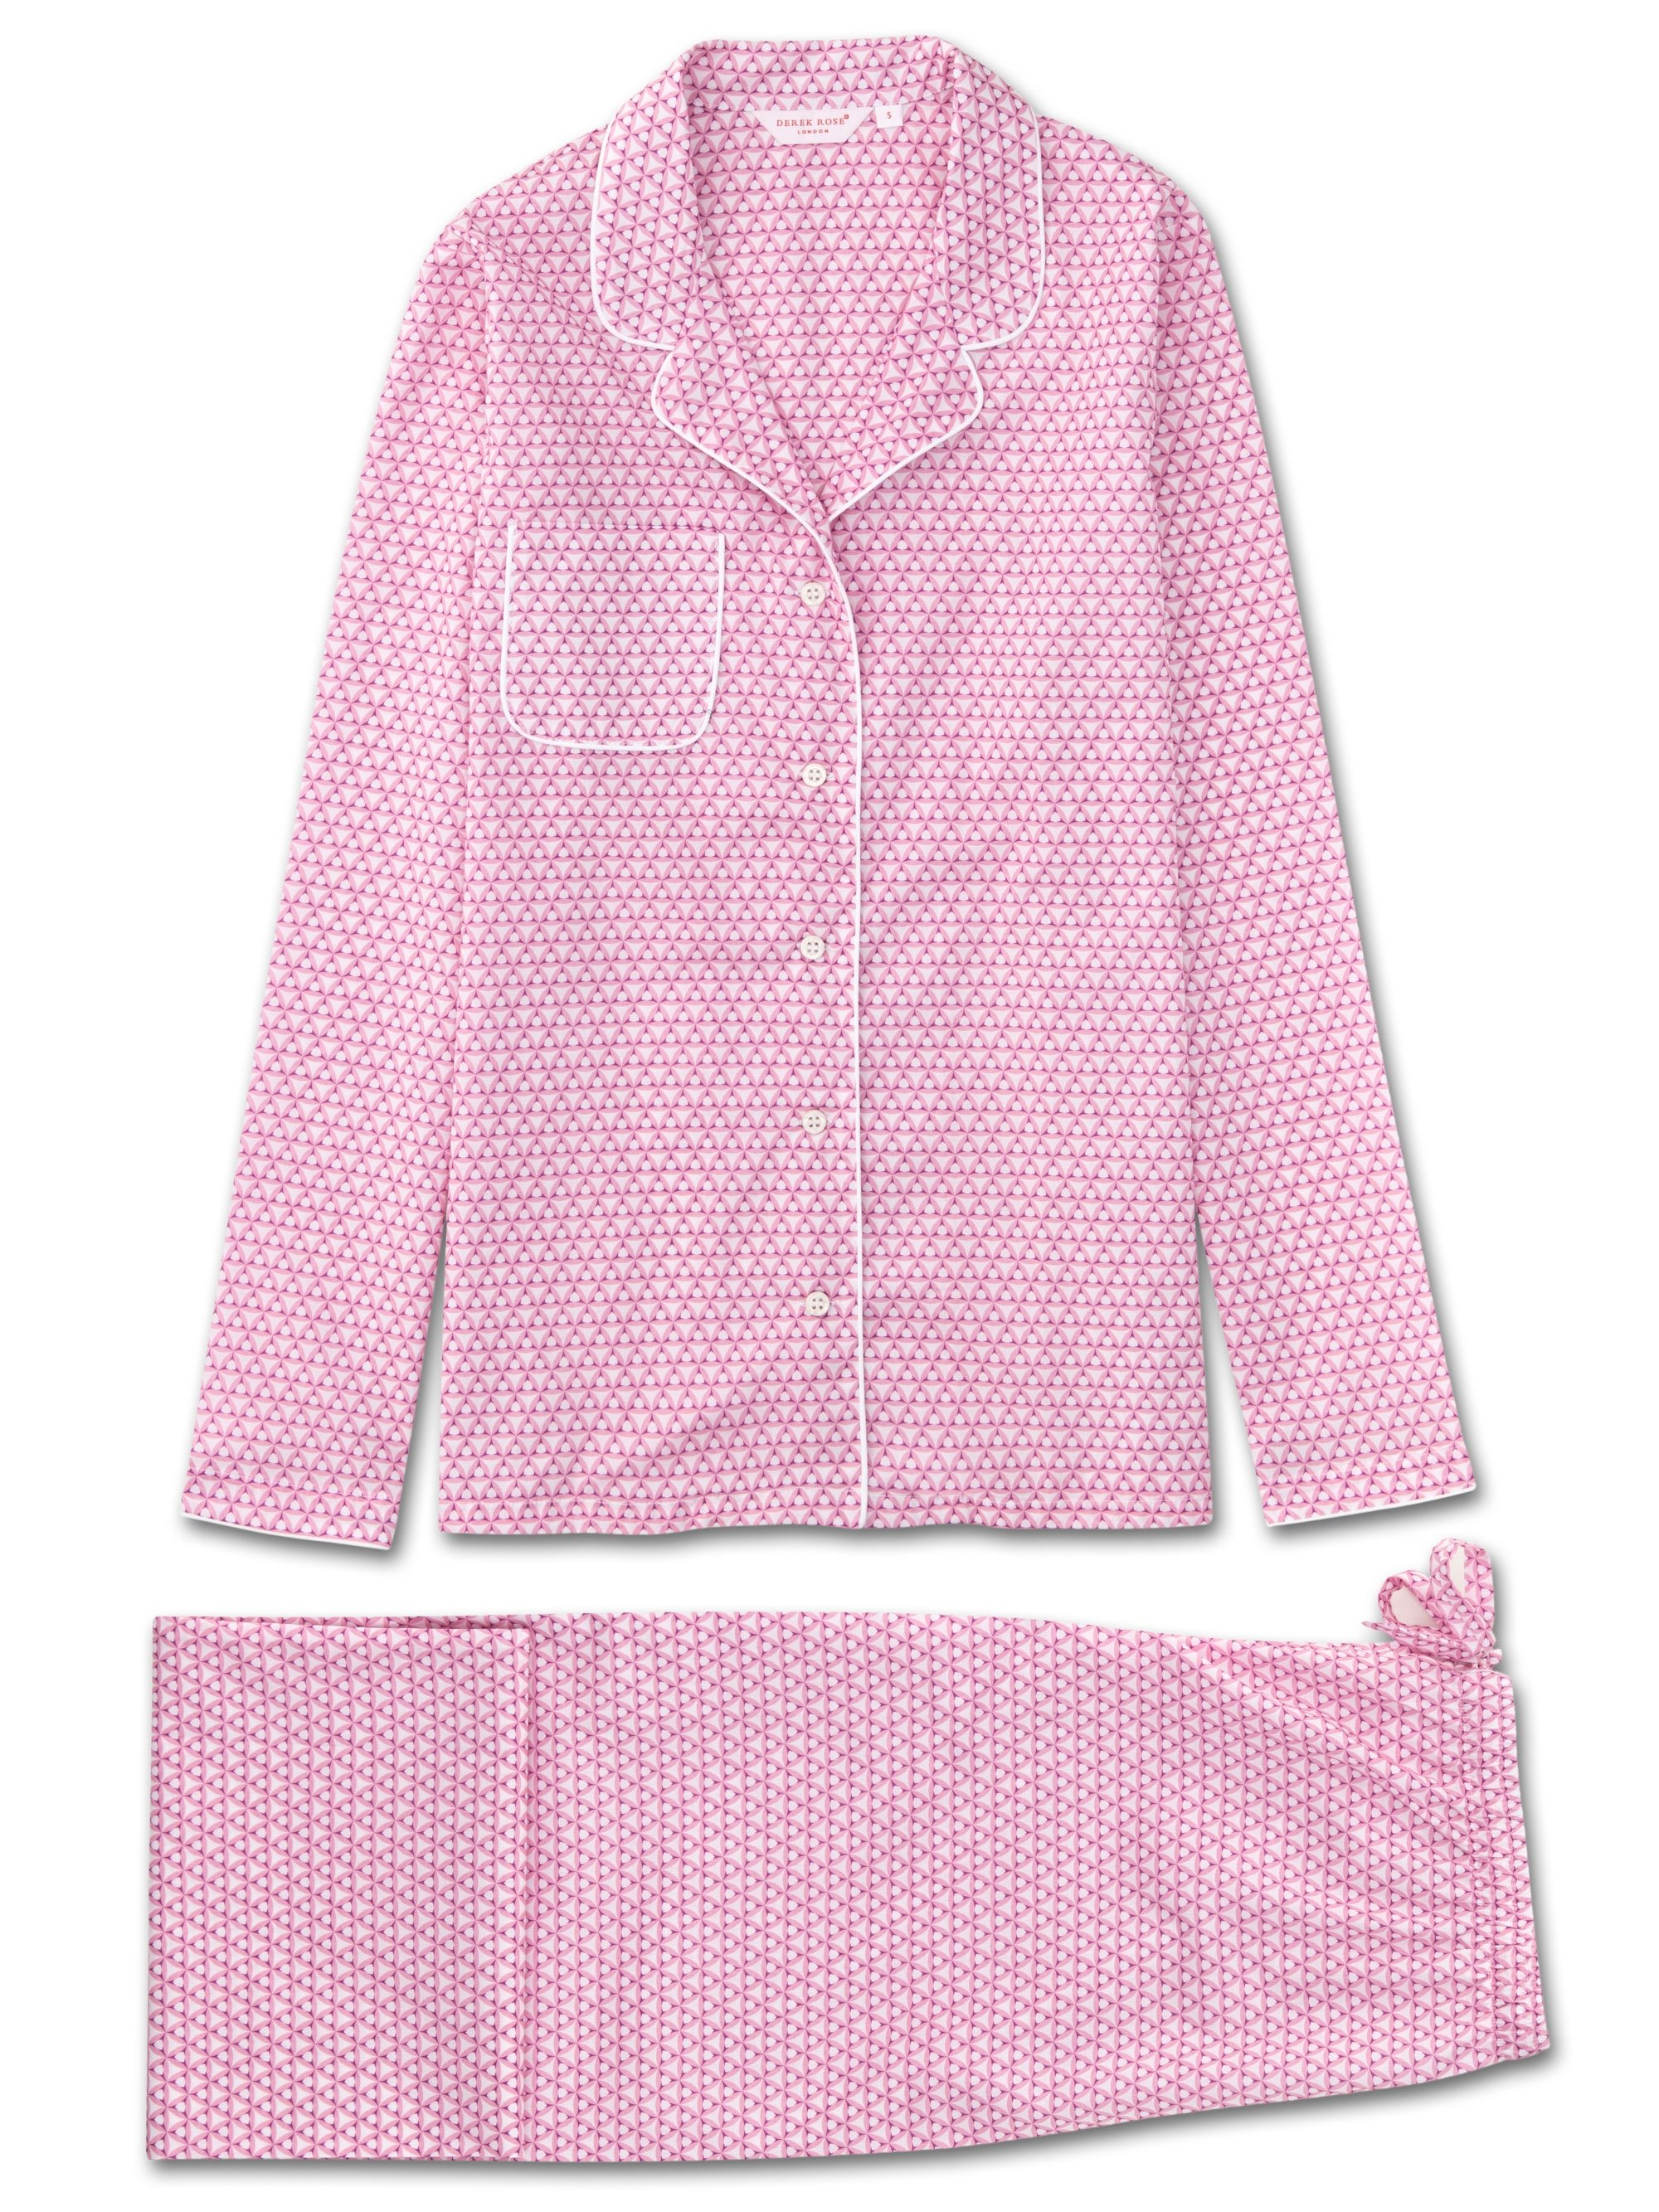 Women's Pyjamas Ledbury 27 Cotton Batiste Pink